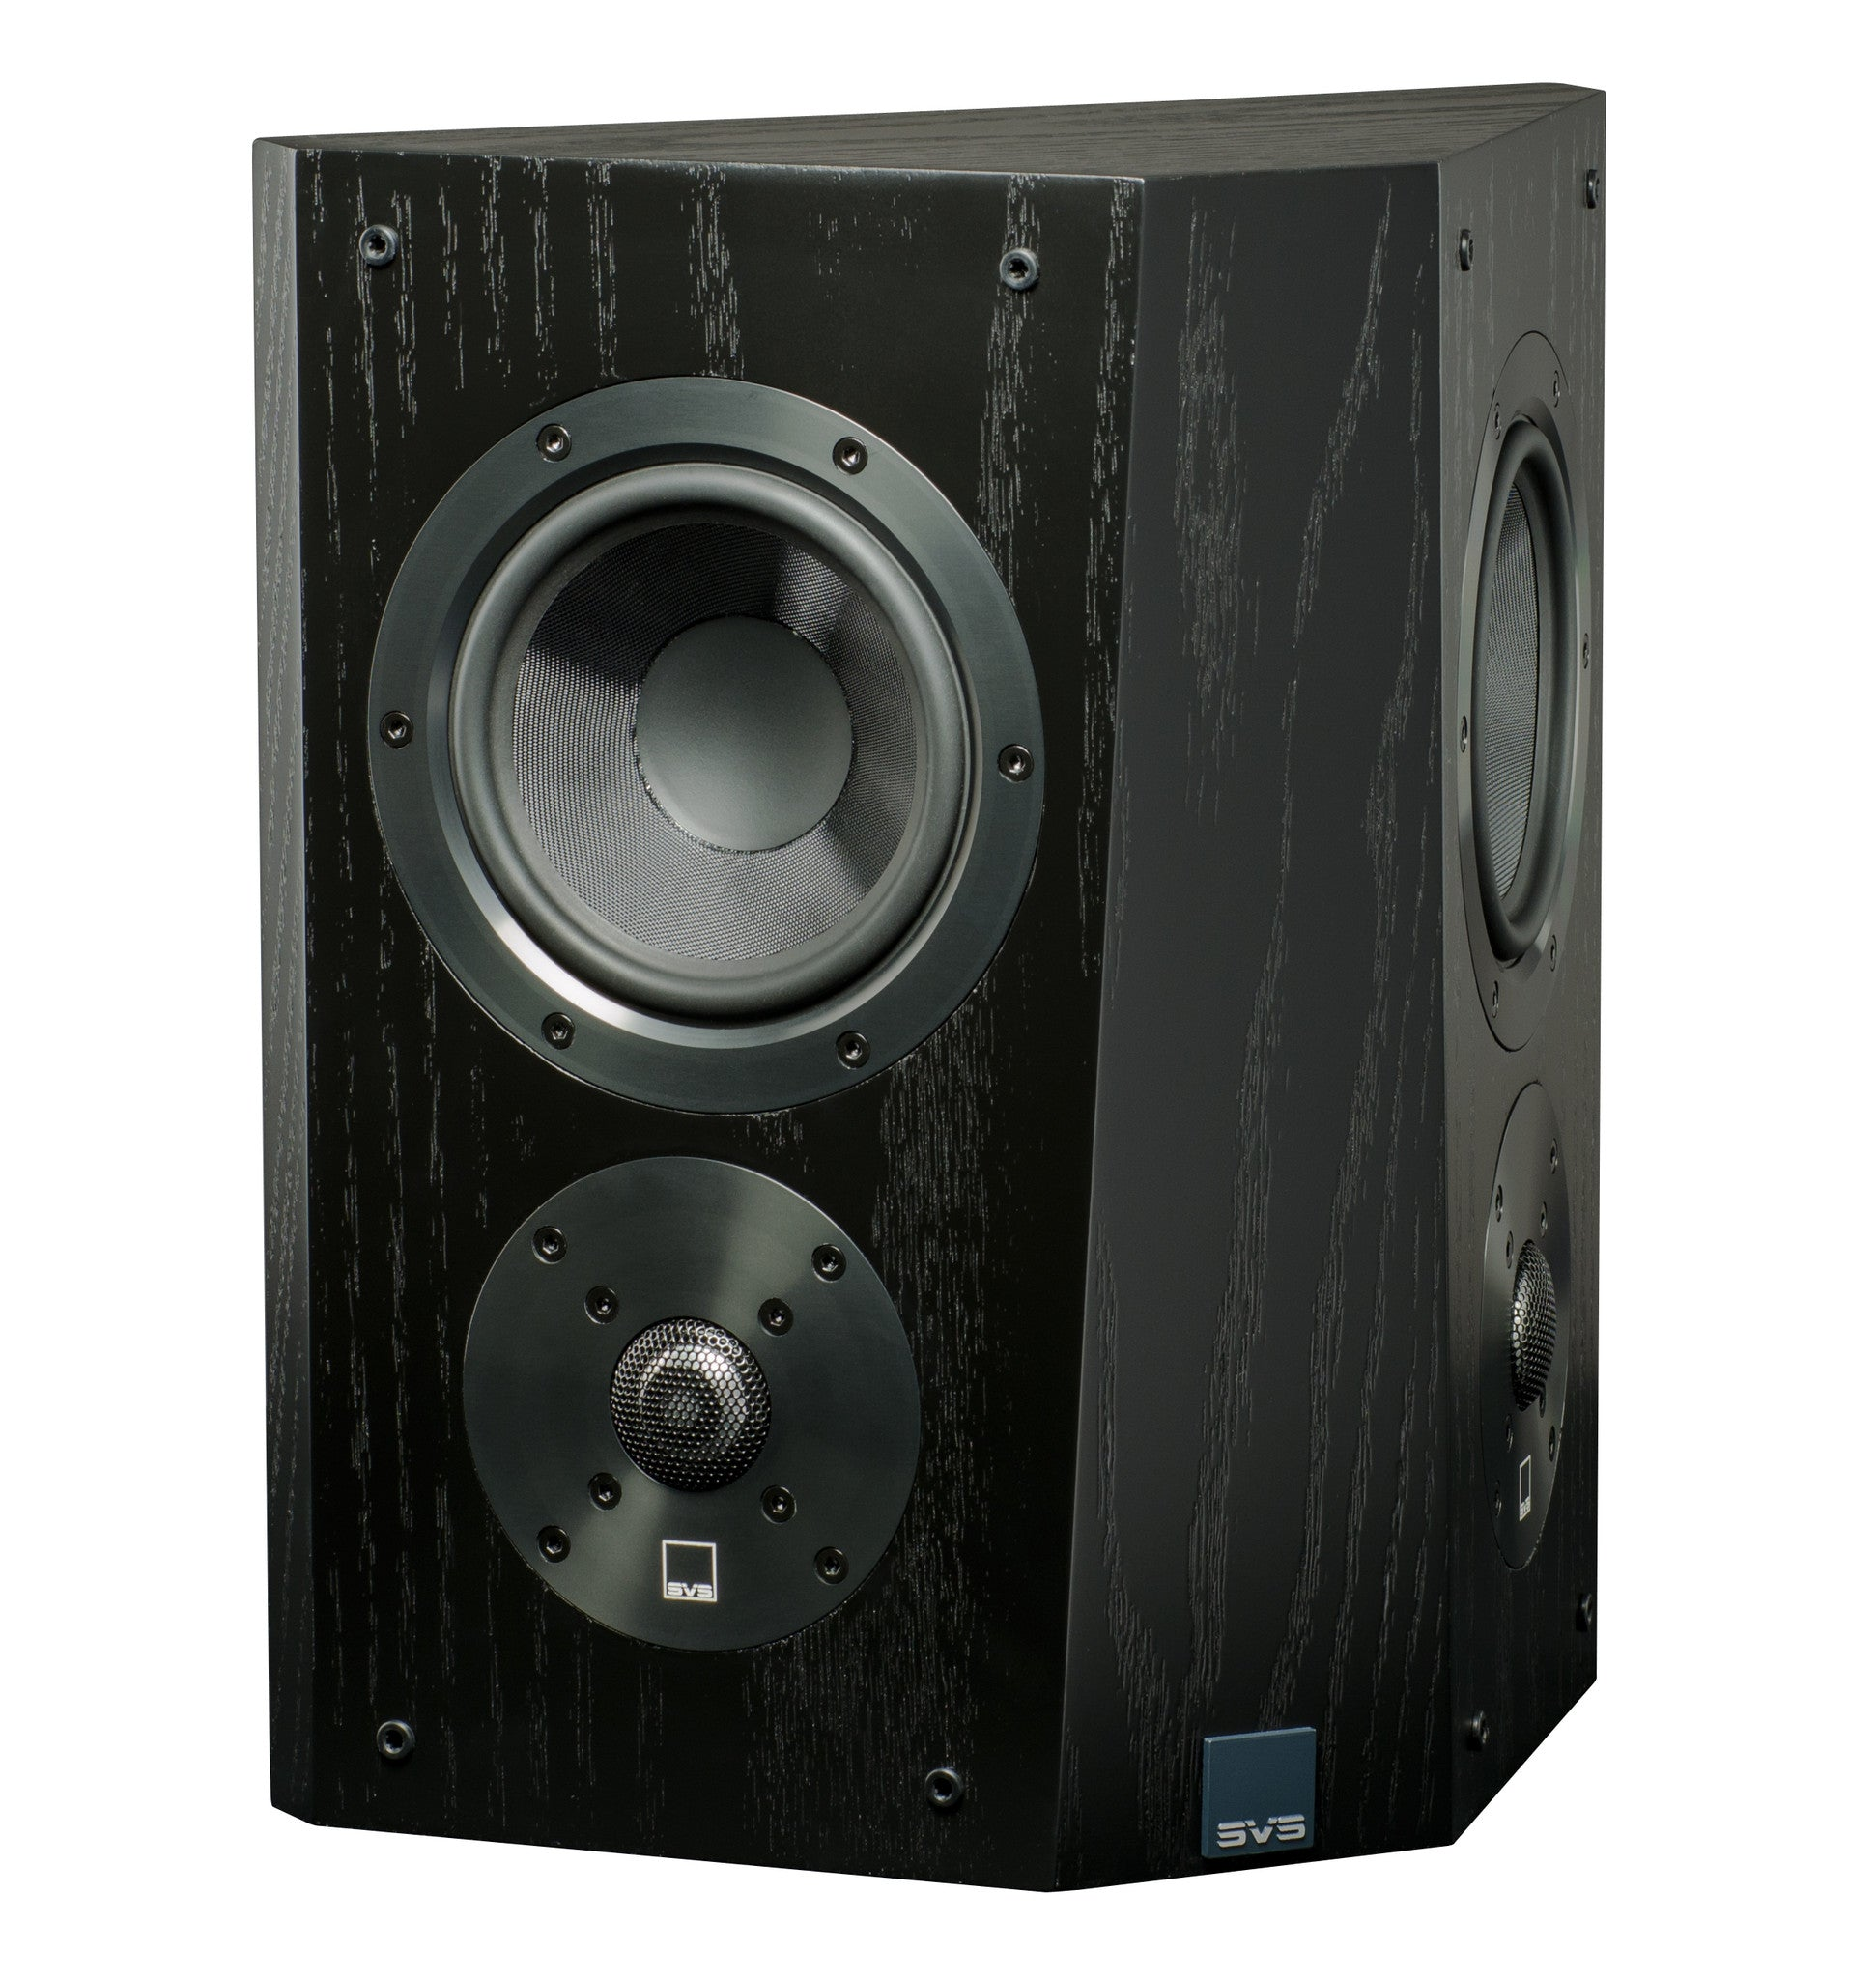 SVS Ultra Surround Speaker | Home Theater Surround Sound Speakers